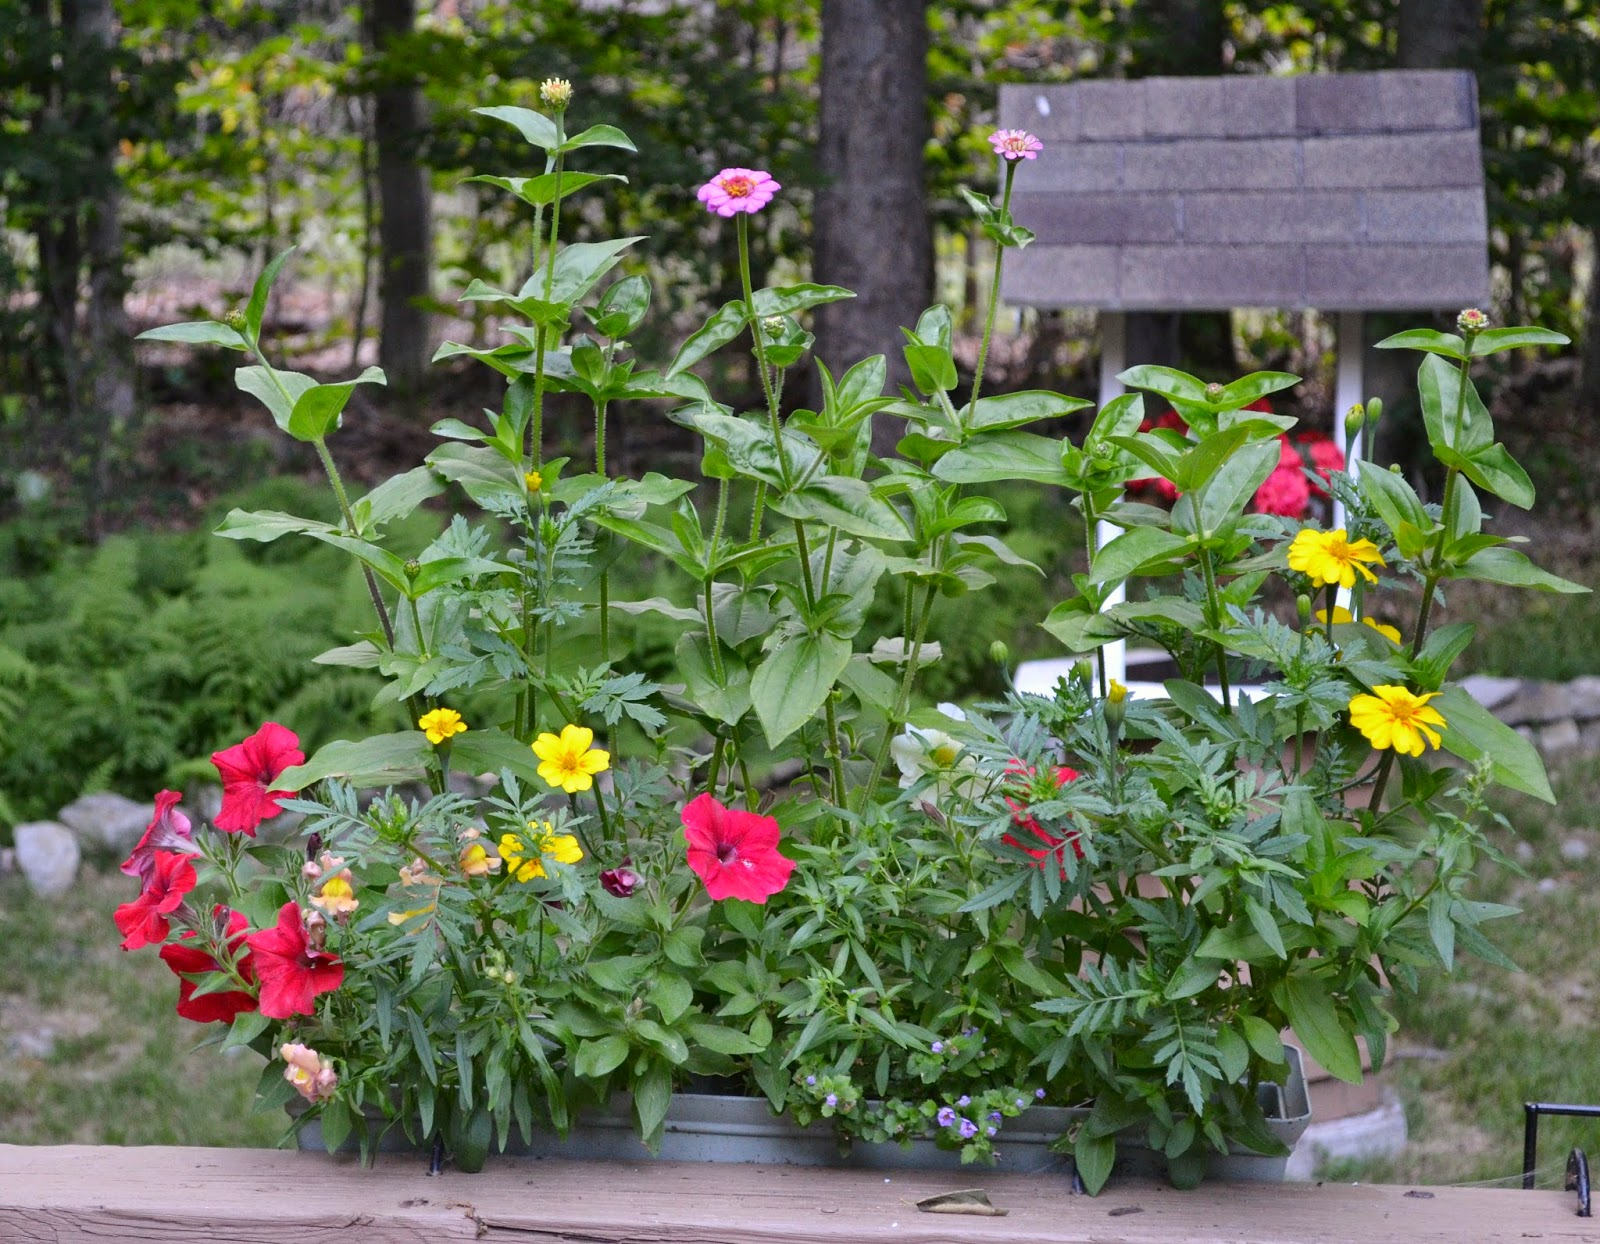 Janies pocono mountain garden summer into fall annuals in perennials may brighten many gardens in the spring and early summer but its the month of august when some annual flowers really start to put on a show izmirmasajfo